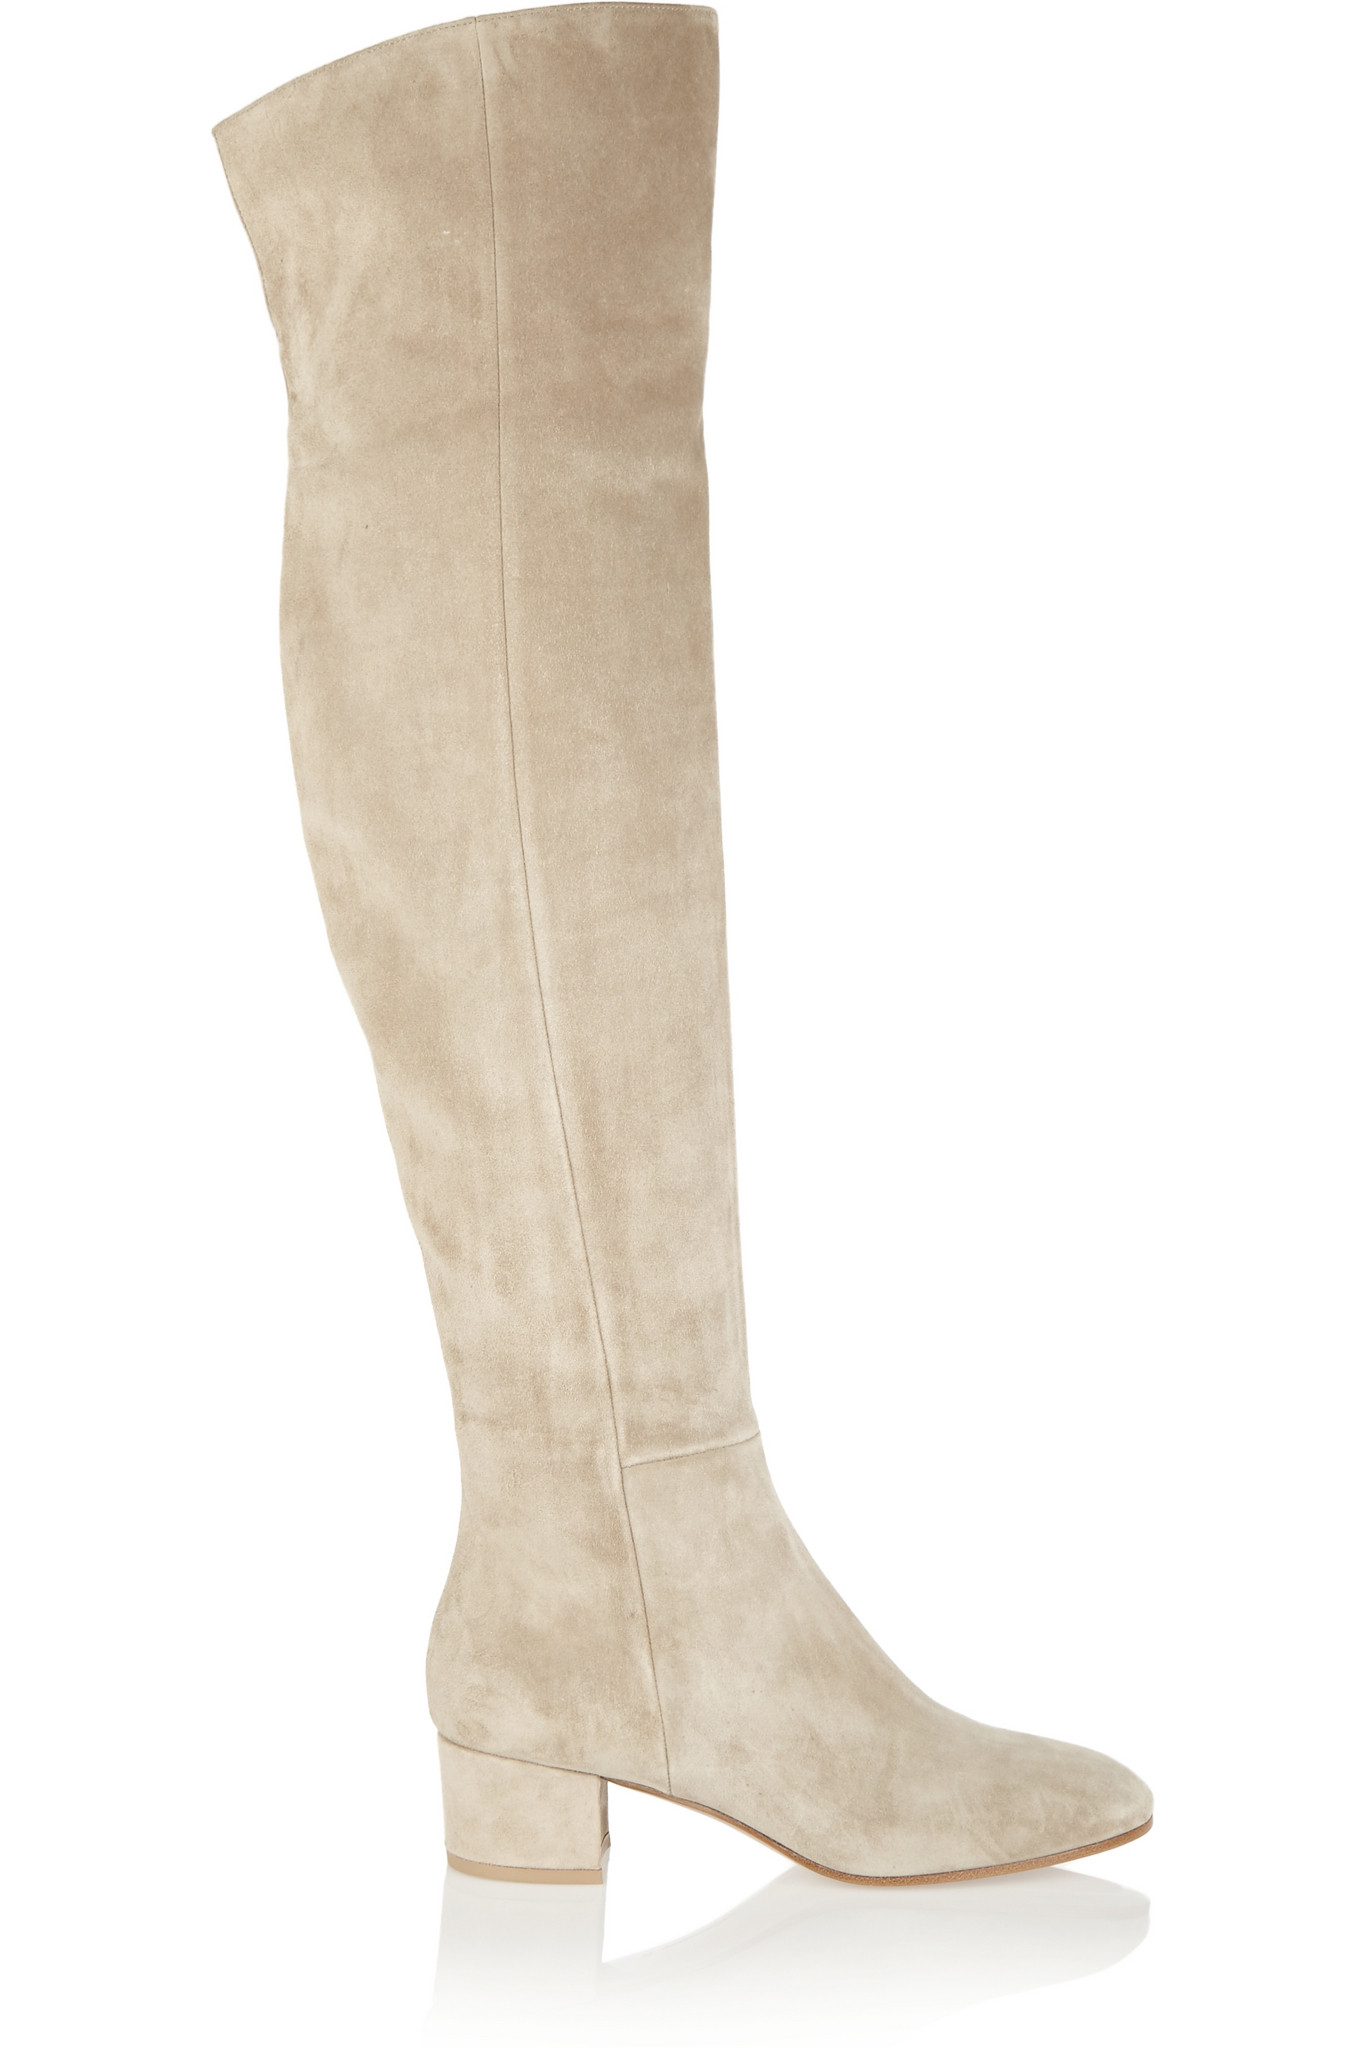 How to Wear Beige Suede Boots